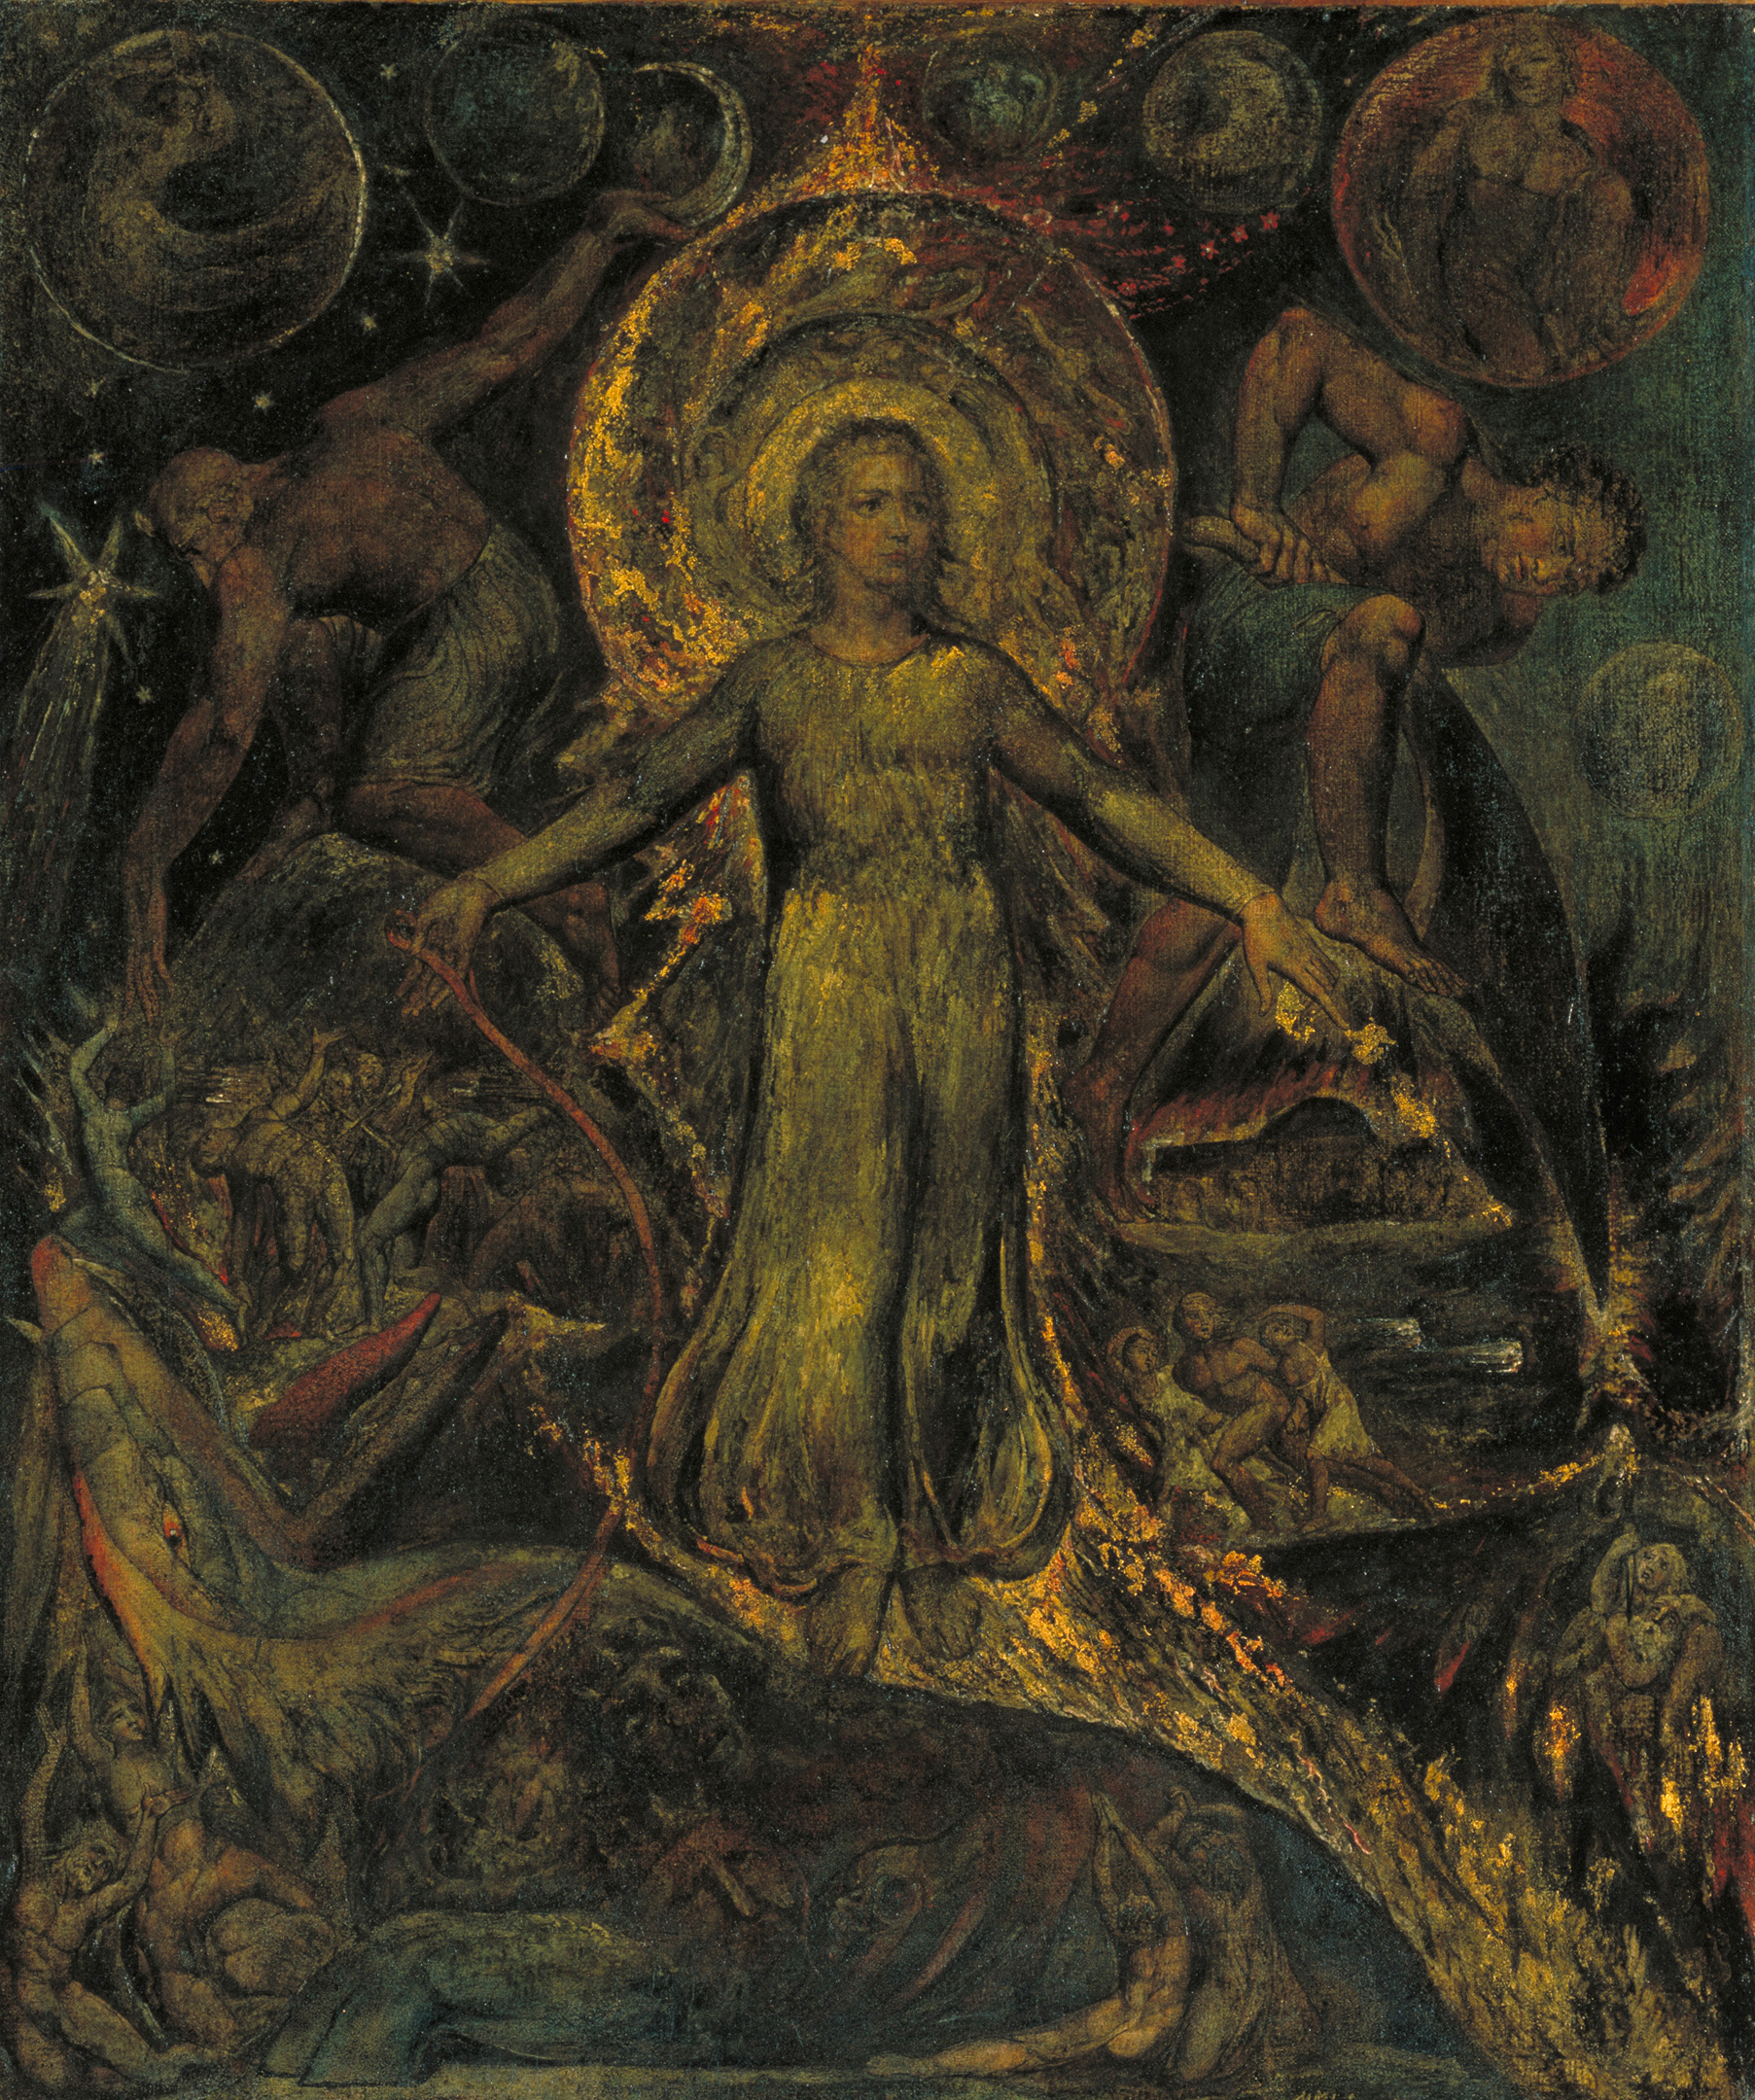 William Blake, The Spiritual Form of Pitt Guiding the Behemoth, 1805| Largest survey show of work by William Blake | STIRworld